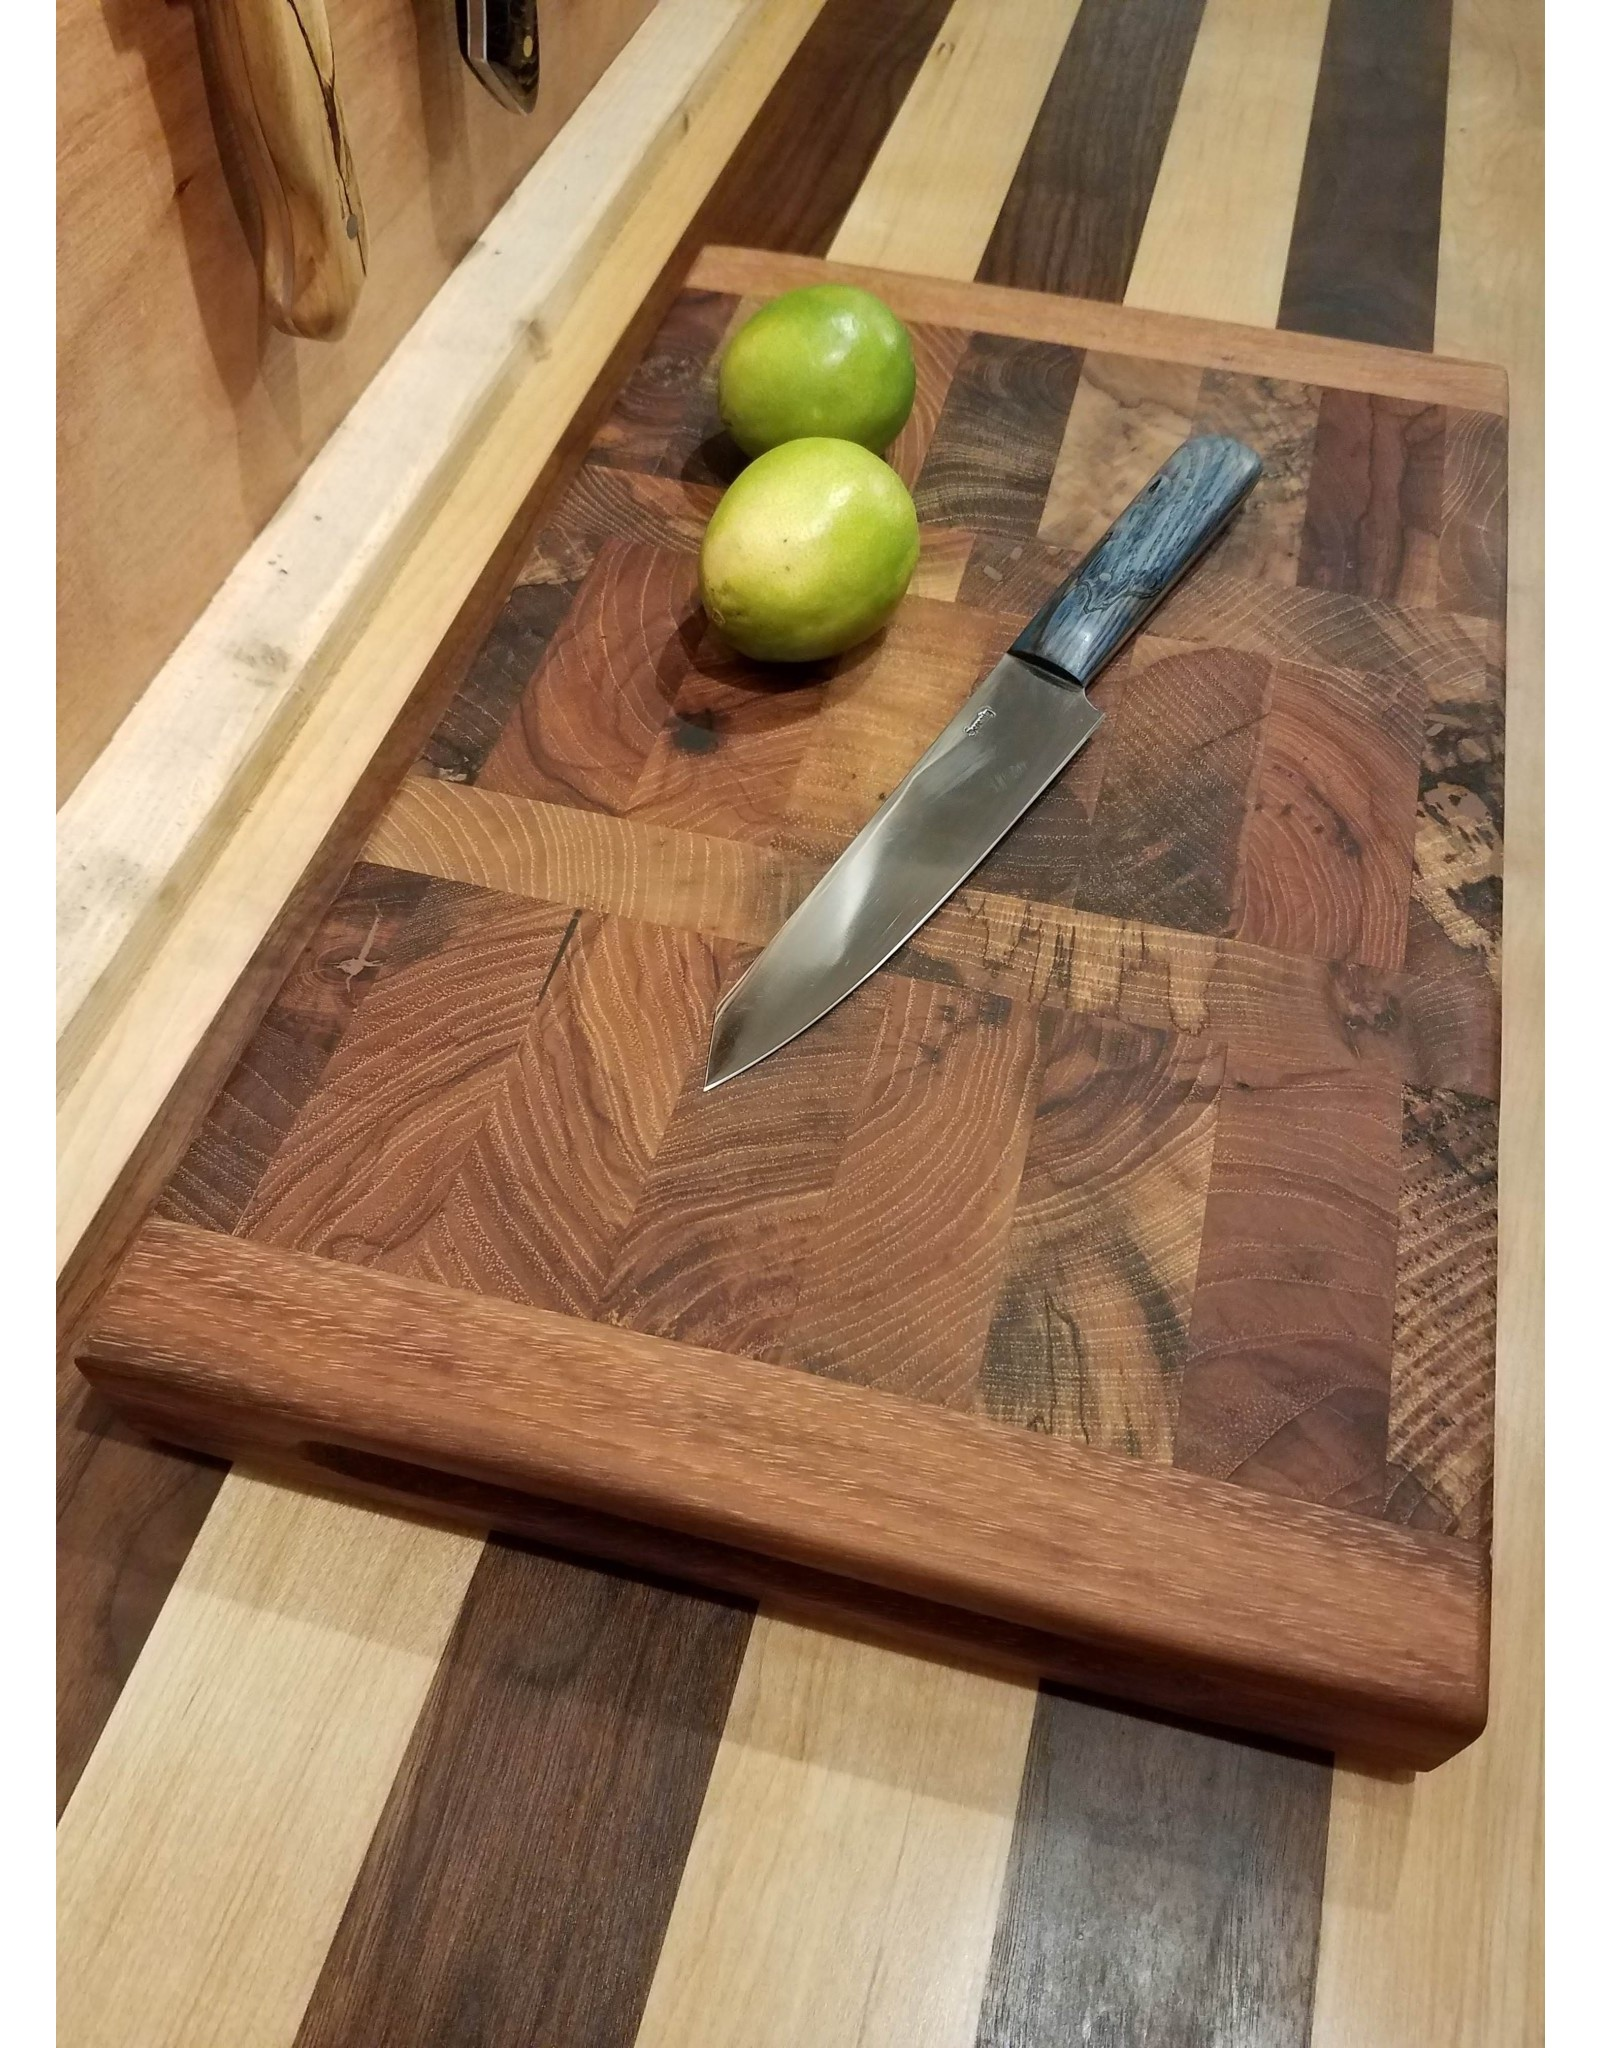 Tin Roof Kitchen and Home Spring Orchard Sharp Chef Cutting Board